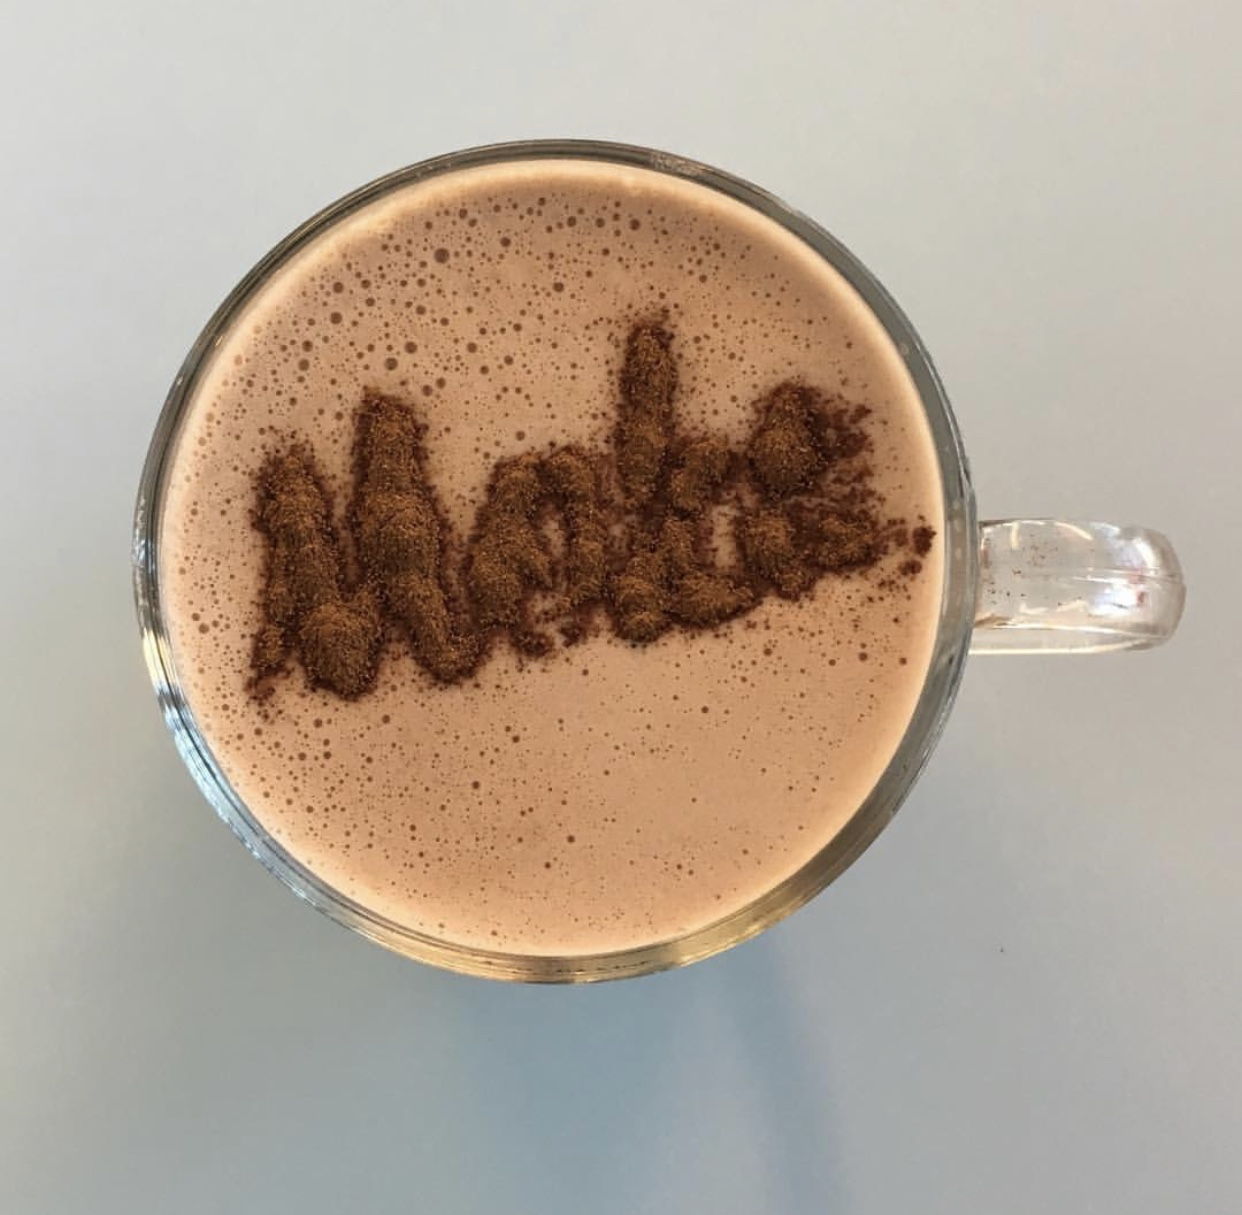 Euro Style Hot Chocolate is available at Moka; made extra thick using our drinking chocolate.